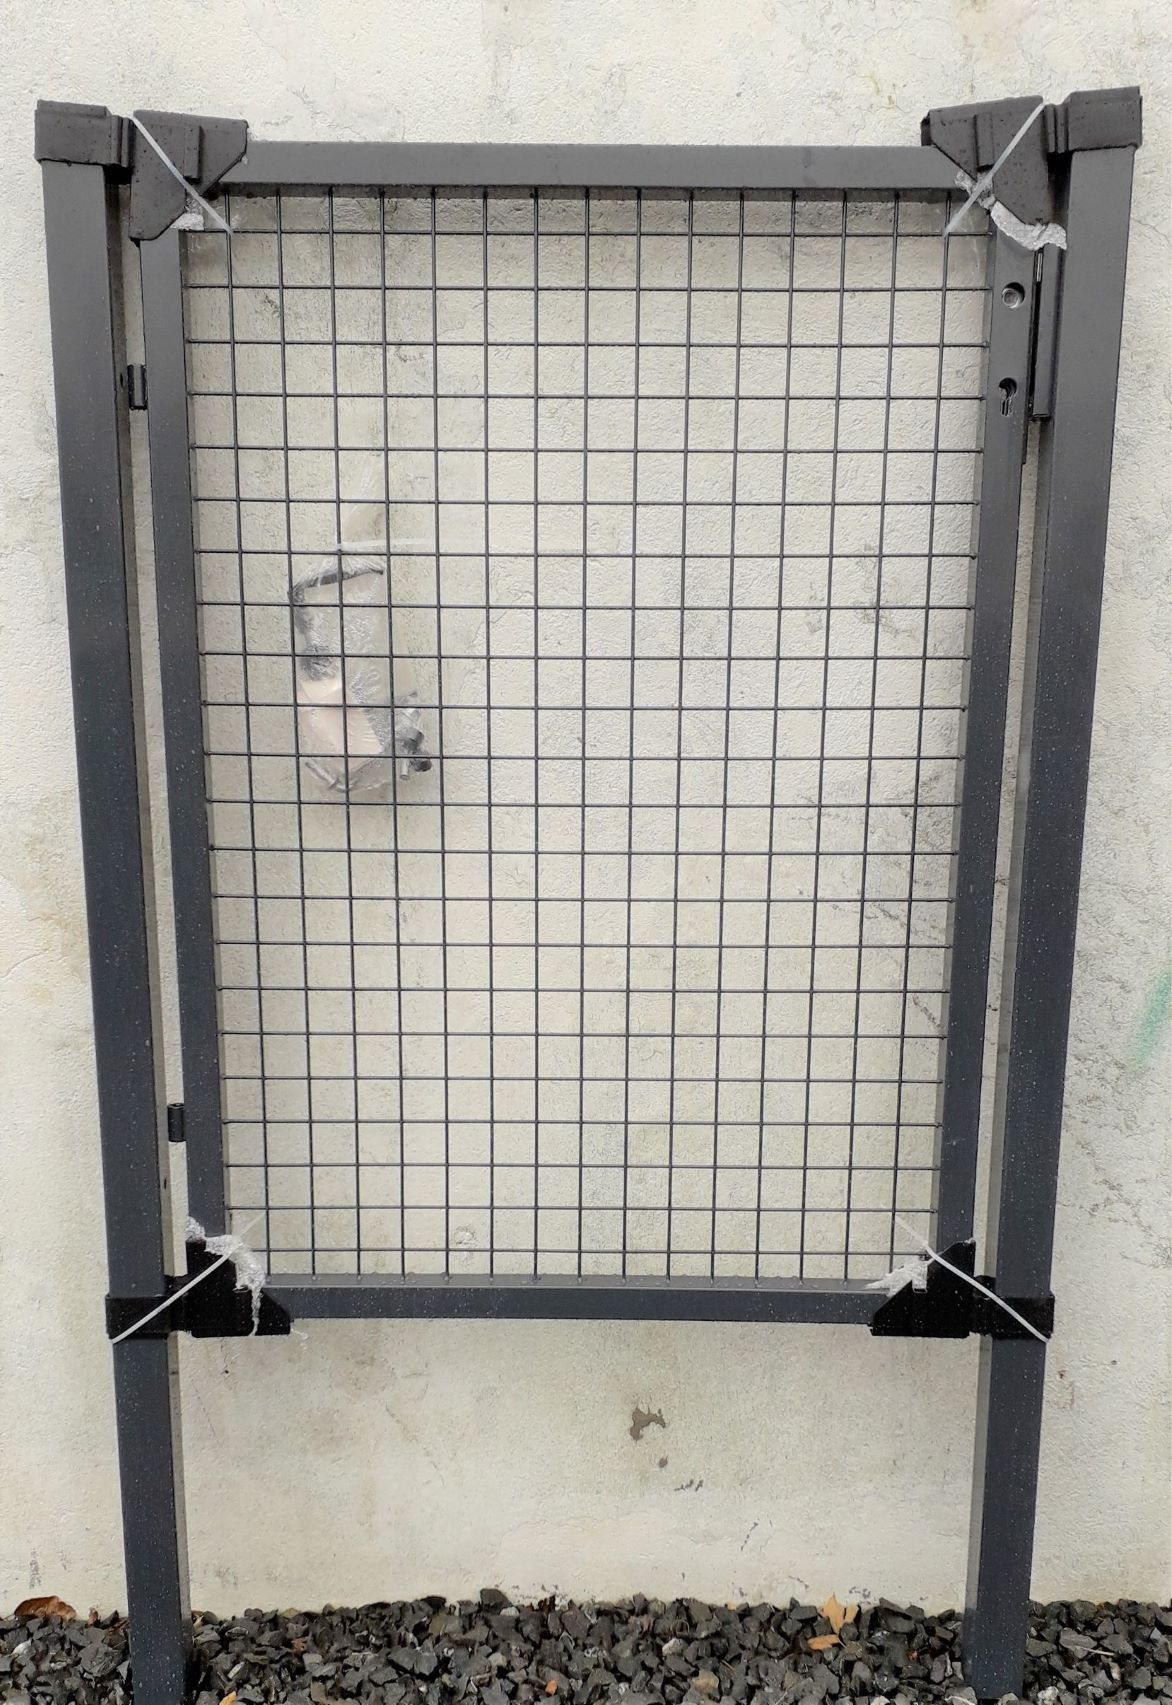 1000mm x 1700mm Residential Gate Kit. GREY Square Frame